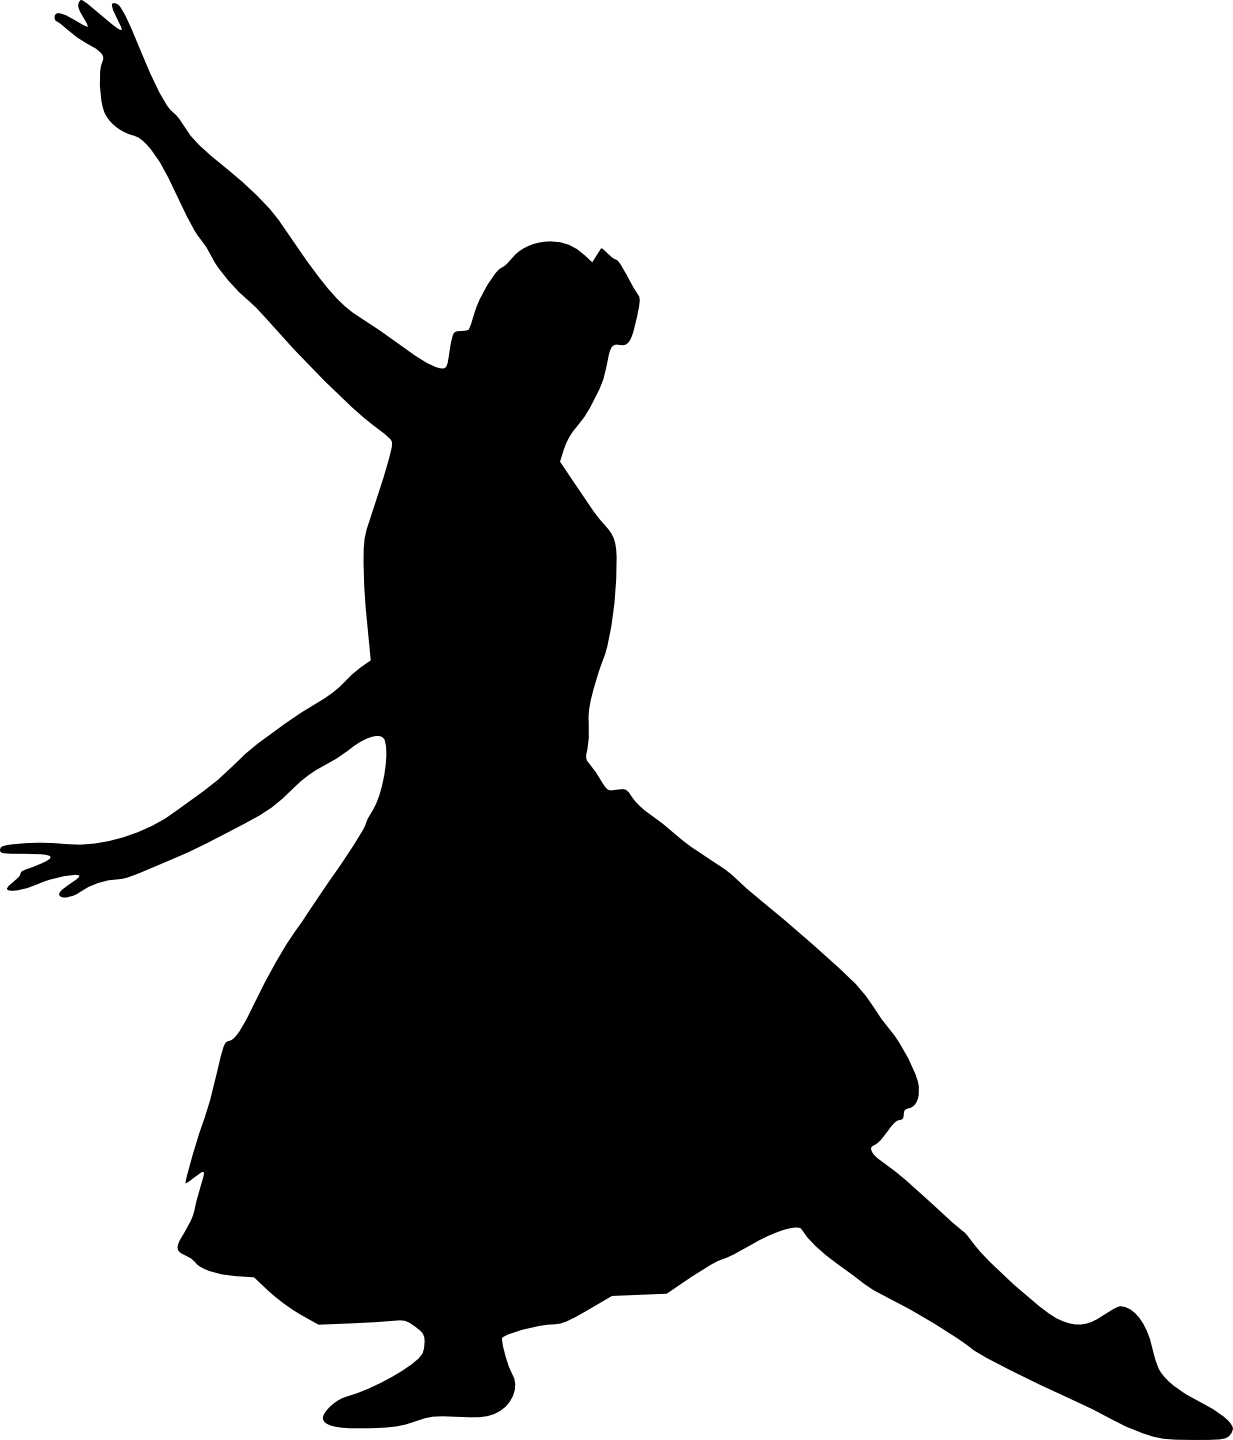 Ballet Silhouette Images at GetDrawings | Free download